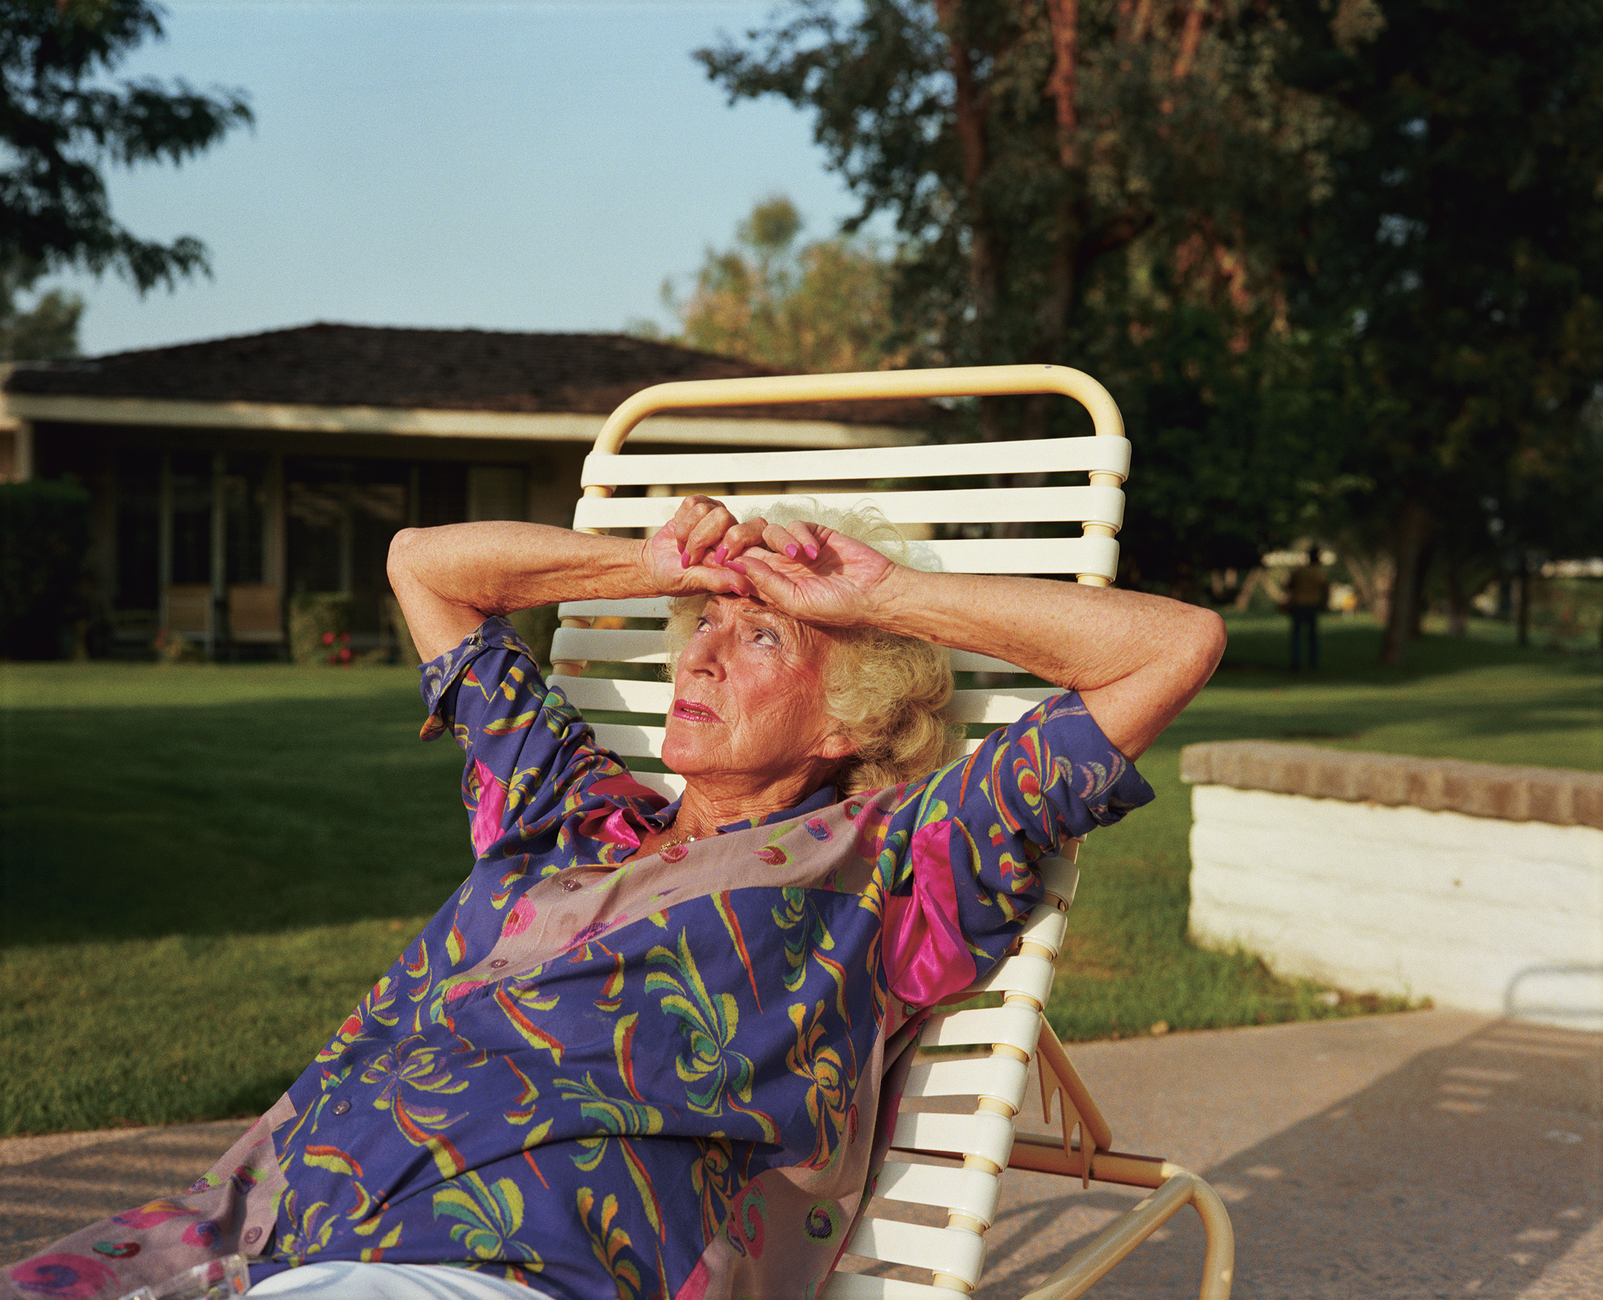 Artwork image, Larry Sultan, Mom on Chaise Lounge